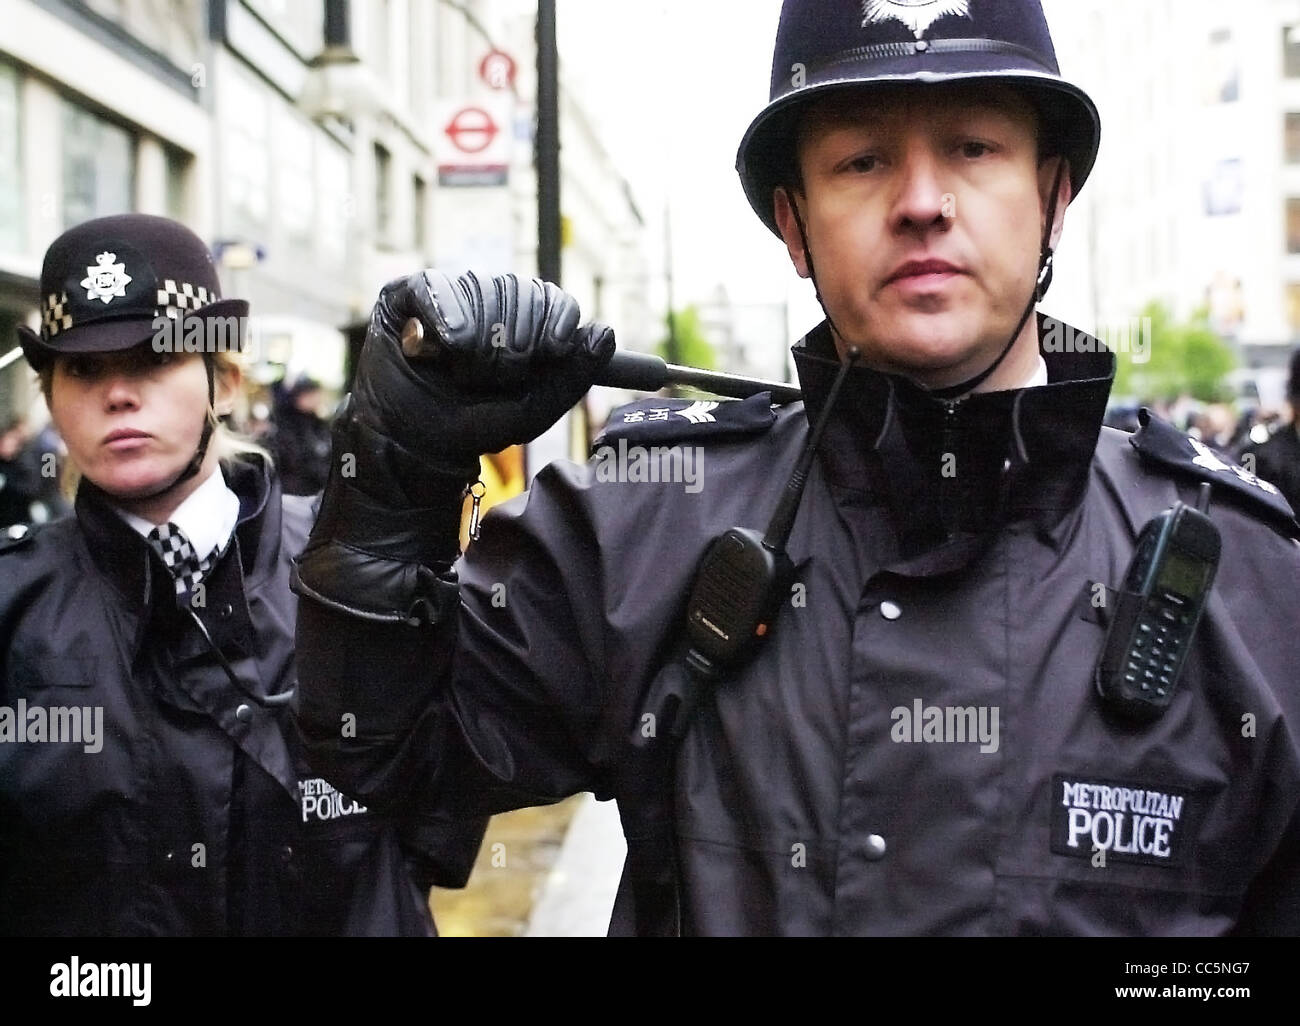 Street policeman with baton raised EDITORIAL USE ONLY British UK NO MODEL RELEASE - EDITORIAL USE ONLY - Stock Image